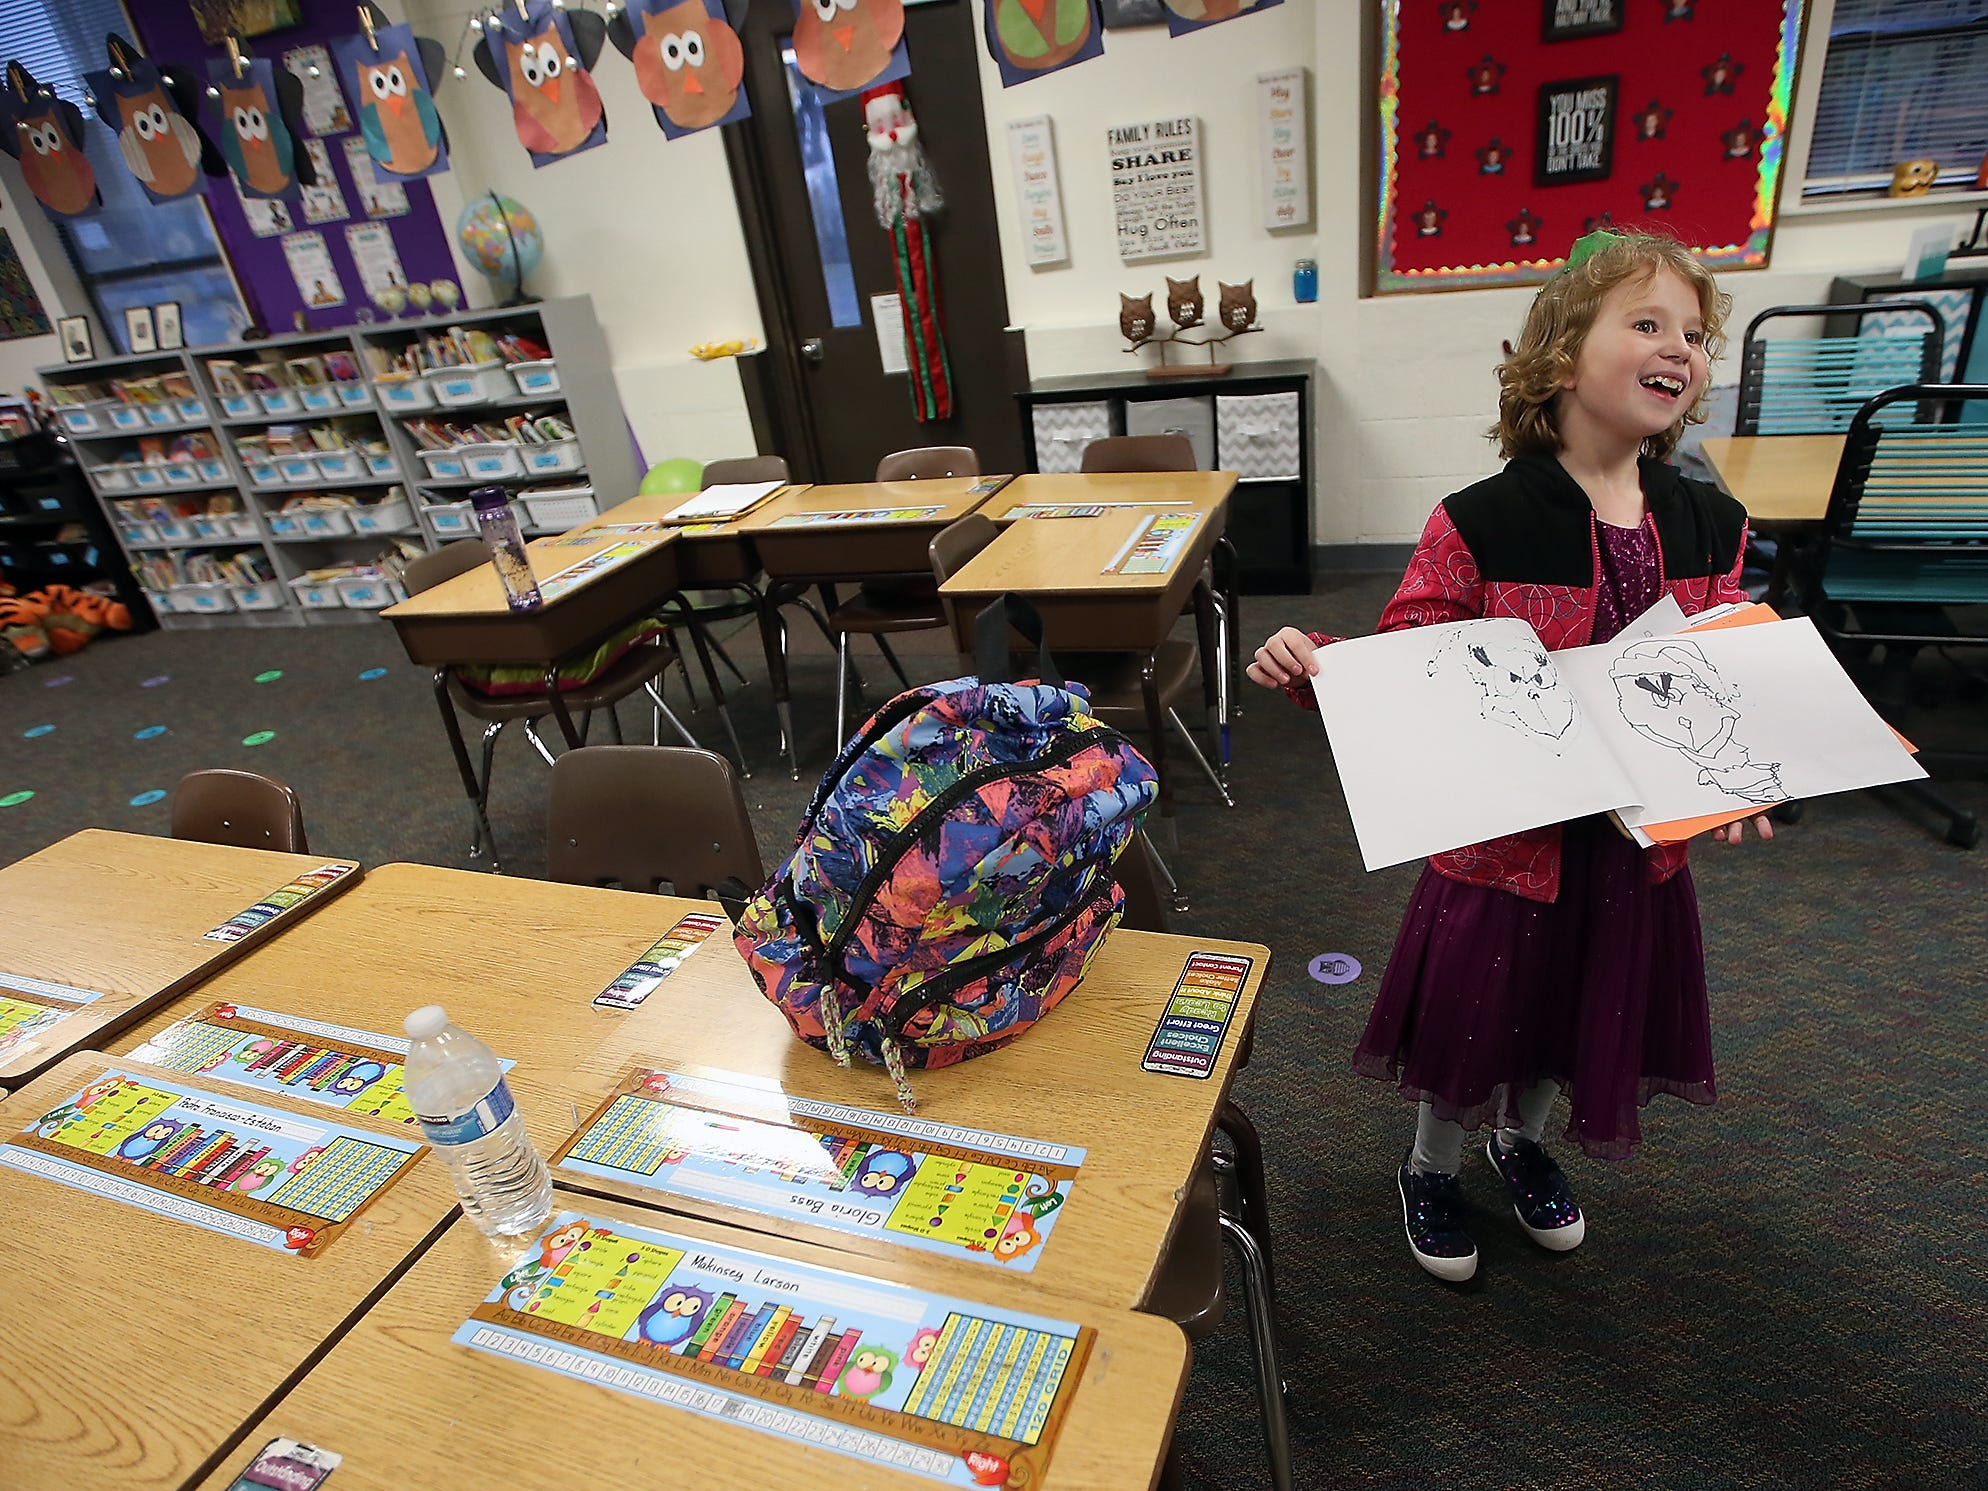 Gloria Bass, 8, shows her mother Krystal Wallin a drawing of the Grinch that she has been working on in her classroom at Olalla Elementary School on Thursday, December 13, 2018.